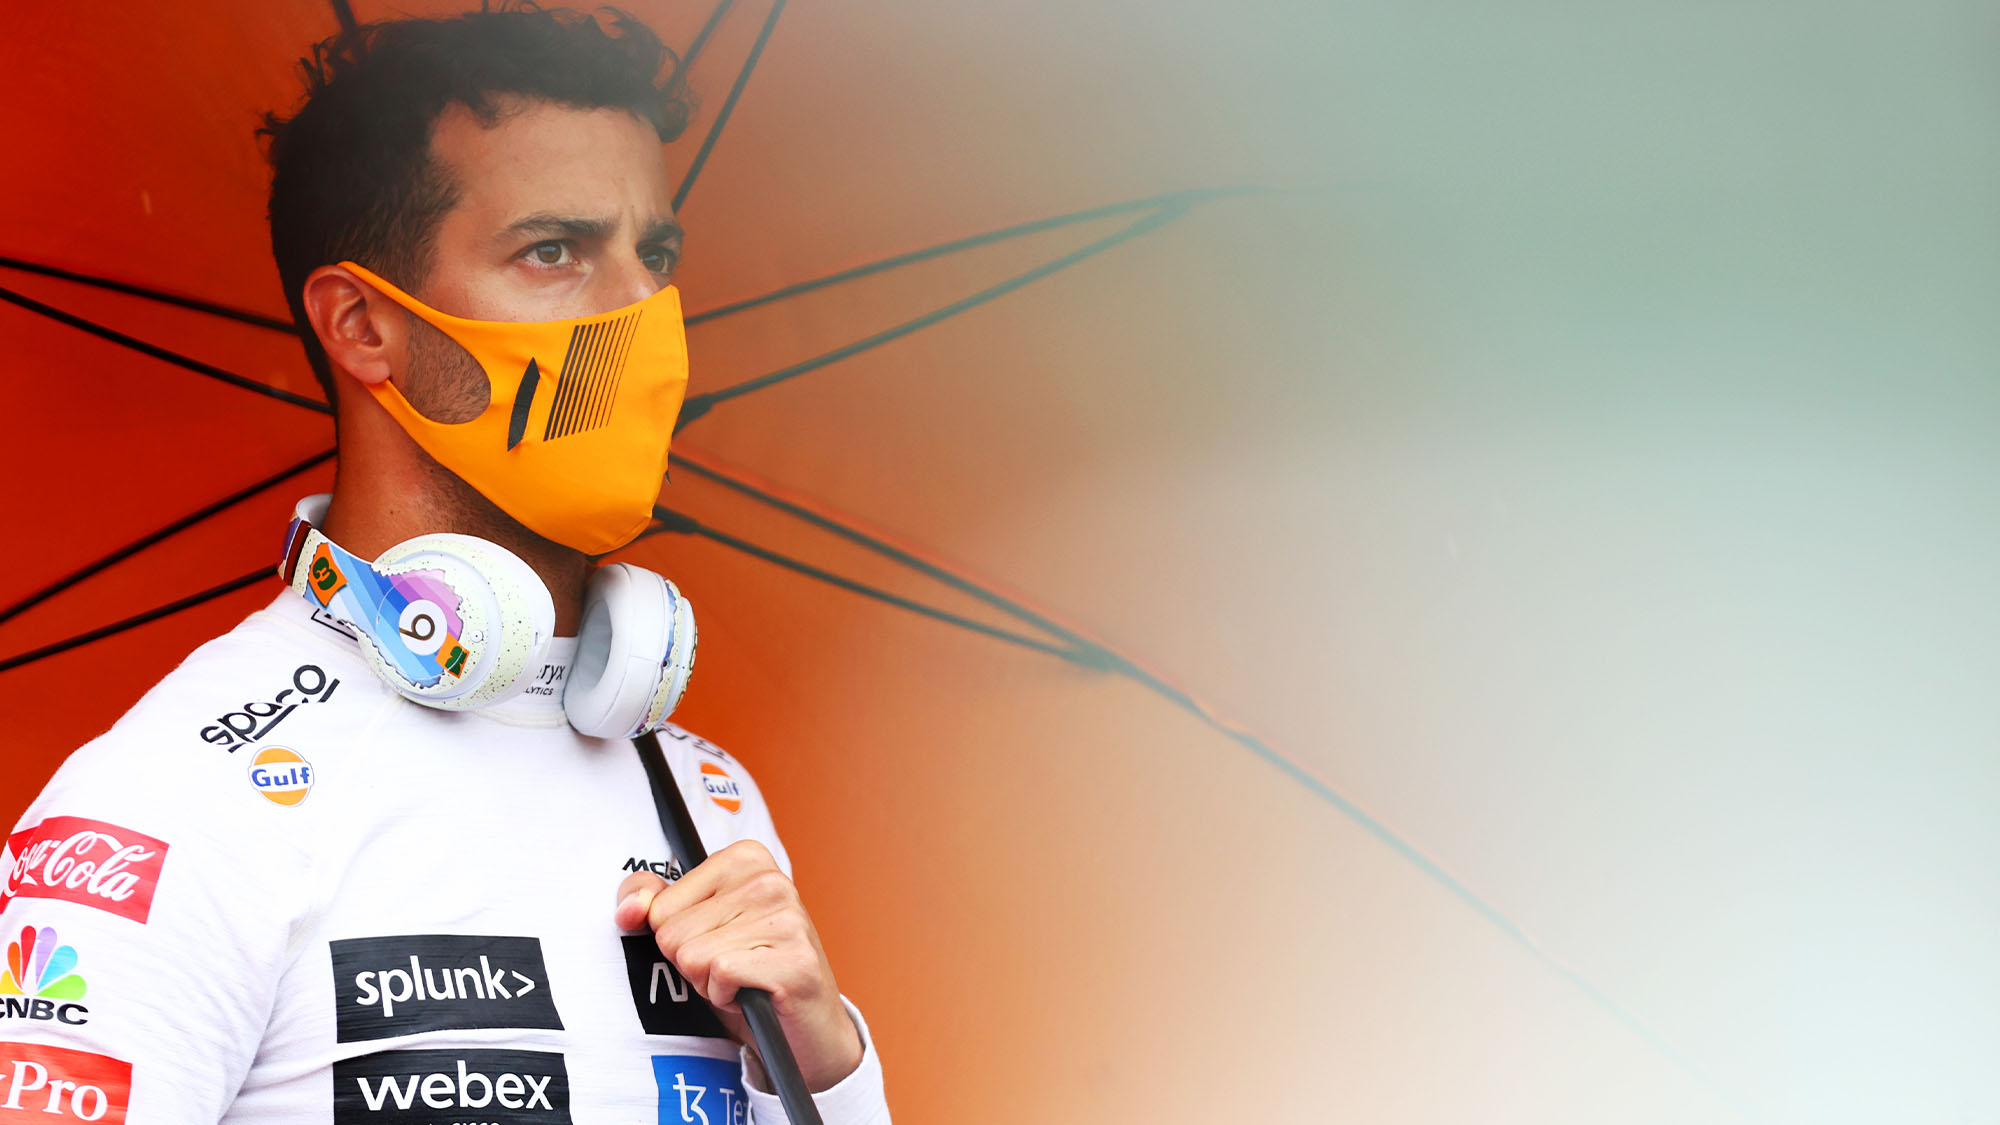 BUDAPEST, HUNGARY - AUGUST 01: Daniel Ricciardo of Australia and McLaren looks on from the grid before the F1 Grand Prix of Hungary at Hungaroring on August 01, 2021 in Budapest, Hungary. (Photo by Dan Istitene - Formula 1/Formula 1 via Getty Images)